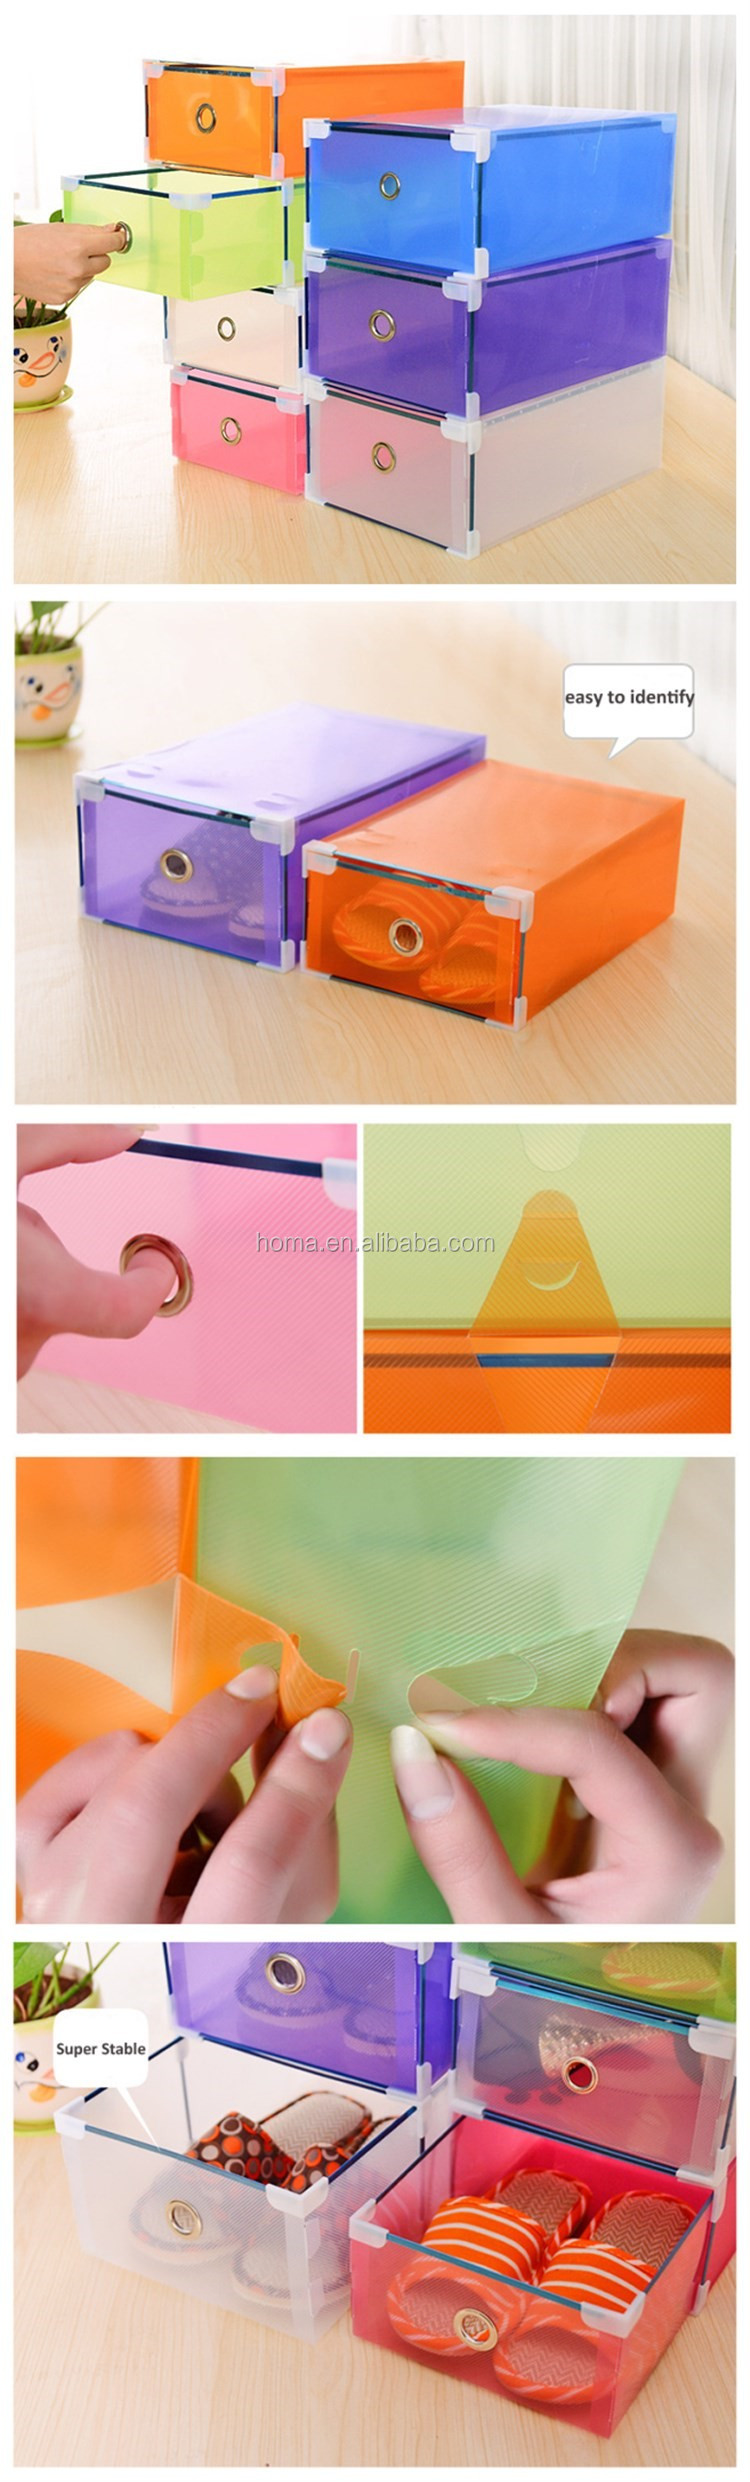 Acrylic box supplier philippines : Clear shoe box for sale philippines buy